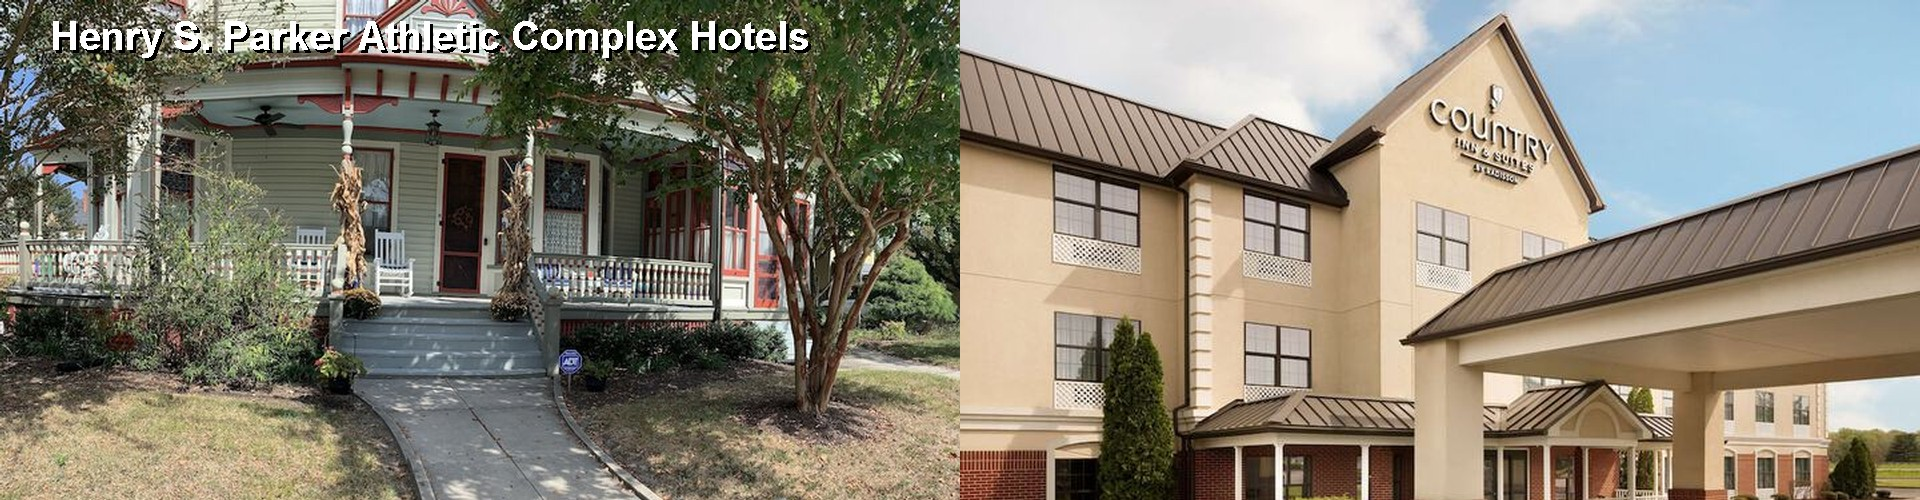 66 Closest Hotels Near Henry S Parker Athletic Complex In